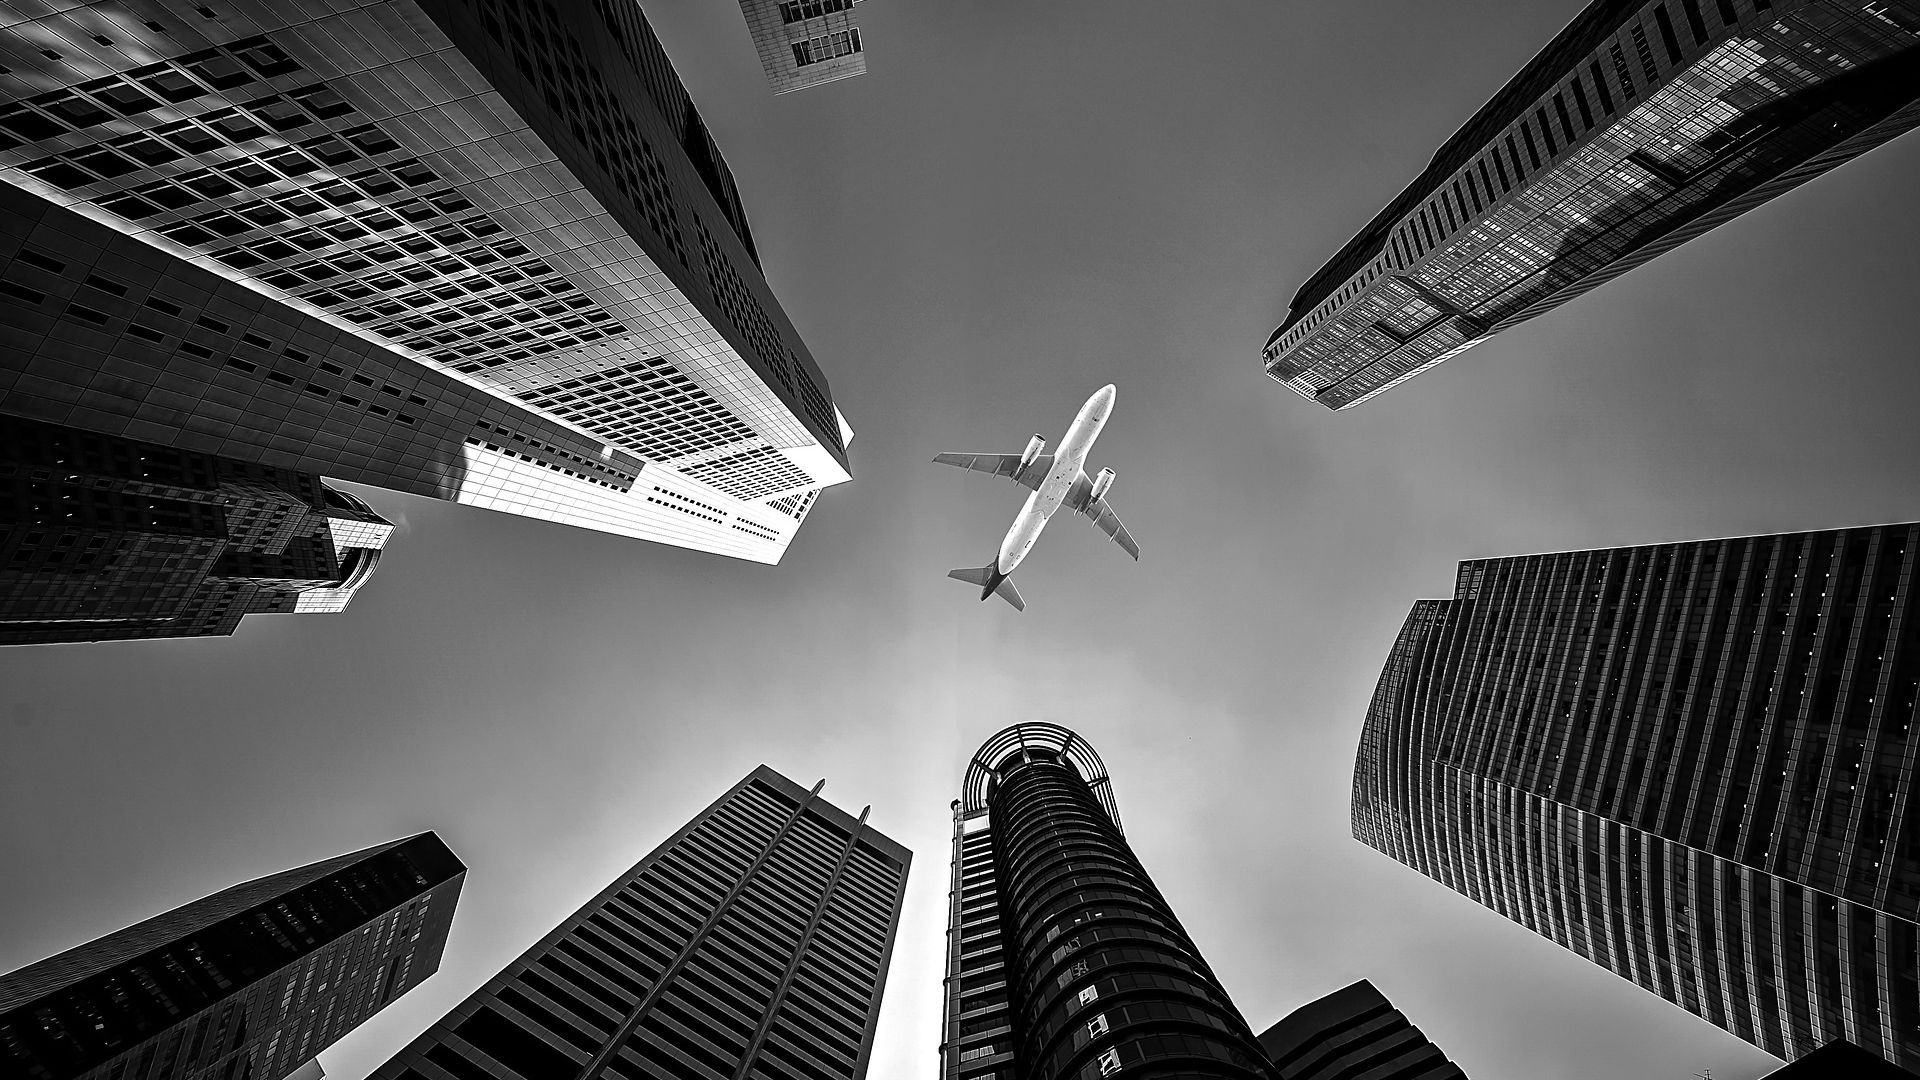 Buildings and Airplane View Wallpaper   Wallpaper Stream 1920x1080